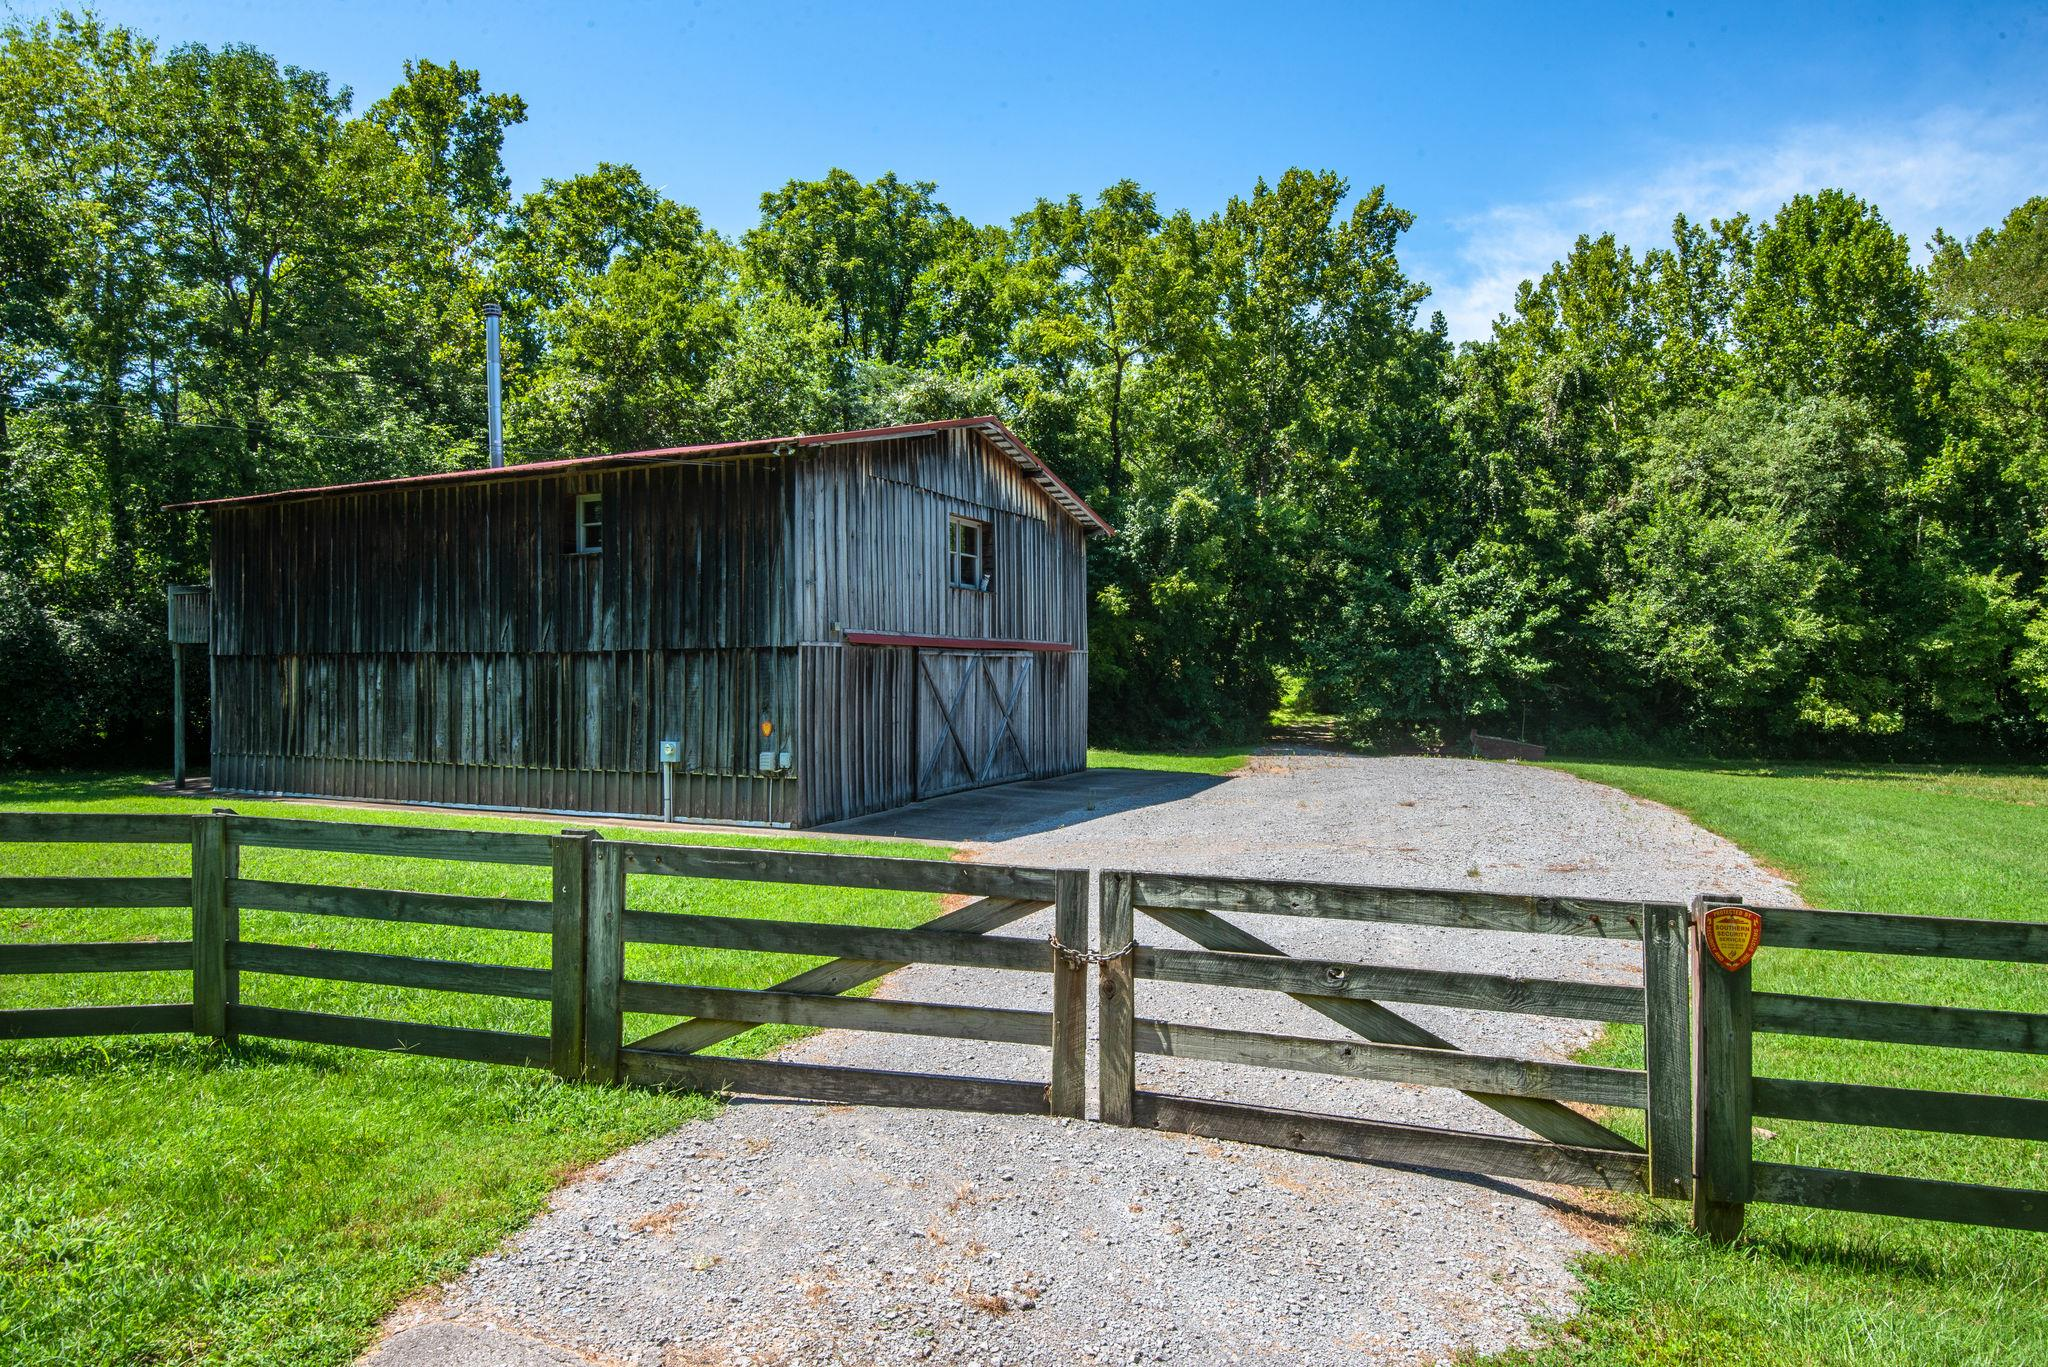 Gorgeous 36 acre estate in prime location! Build your own private compound among the wooded & rolling hills with room for all the animals of your dreams.  Property includes 4,000 sq ft barn w/ over 2700 sq ft of finished living space w/ full kitchen, laundry room and 2 full baths. Perfect for the weekend retreat & only minutes to everywhere! Amazing opportunity for future luxury residential development with 1252  of road frontage. Current R2 zoning, utilities available, sewer abuts the property